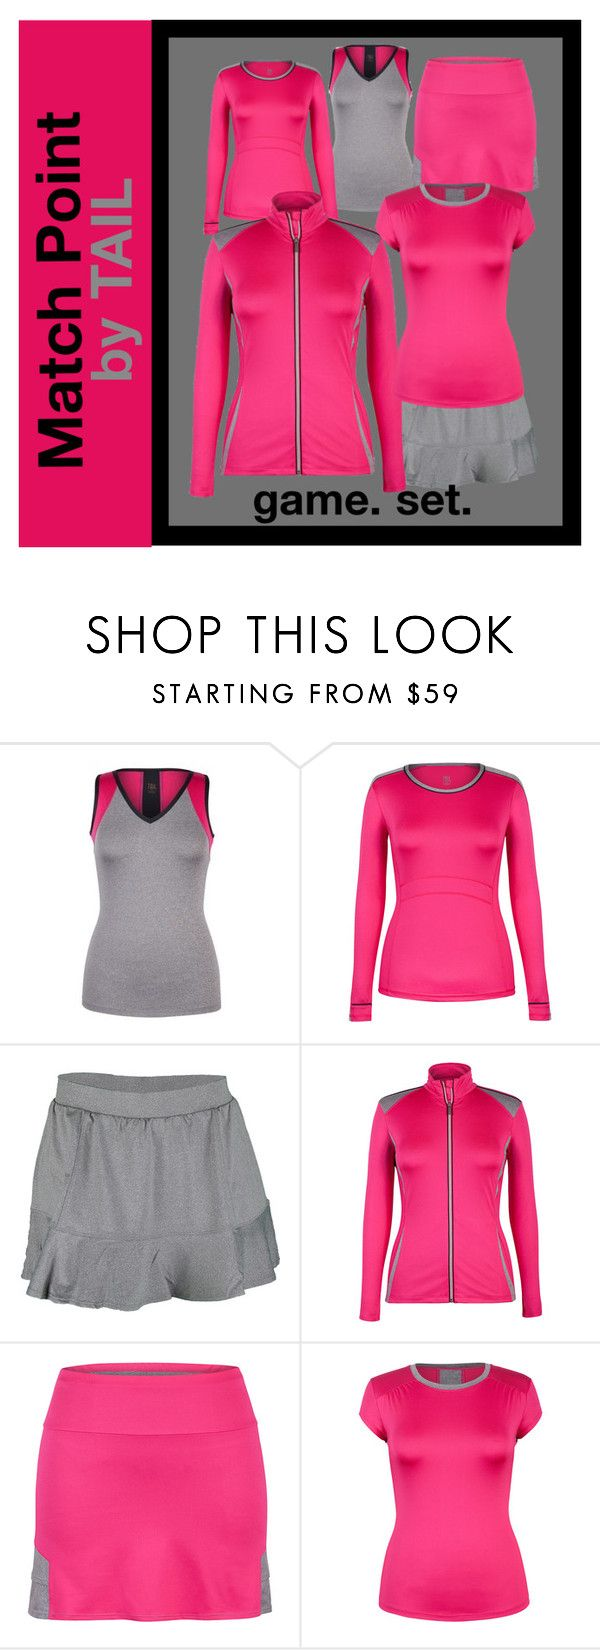 """New Women's Tennis Gear by TAIL"" by tennisexpress Match Point Collection"